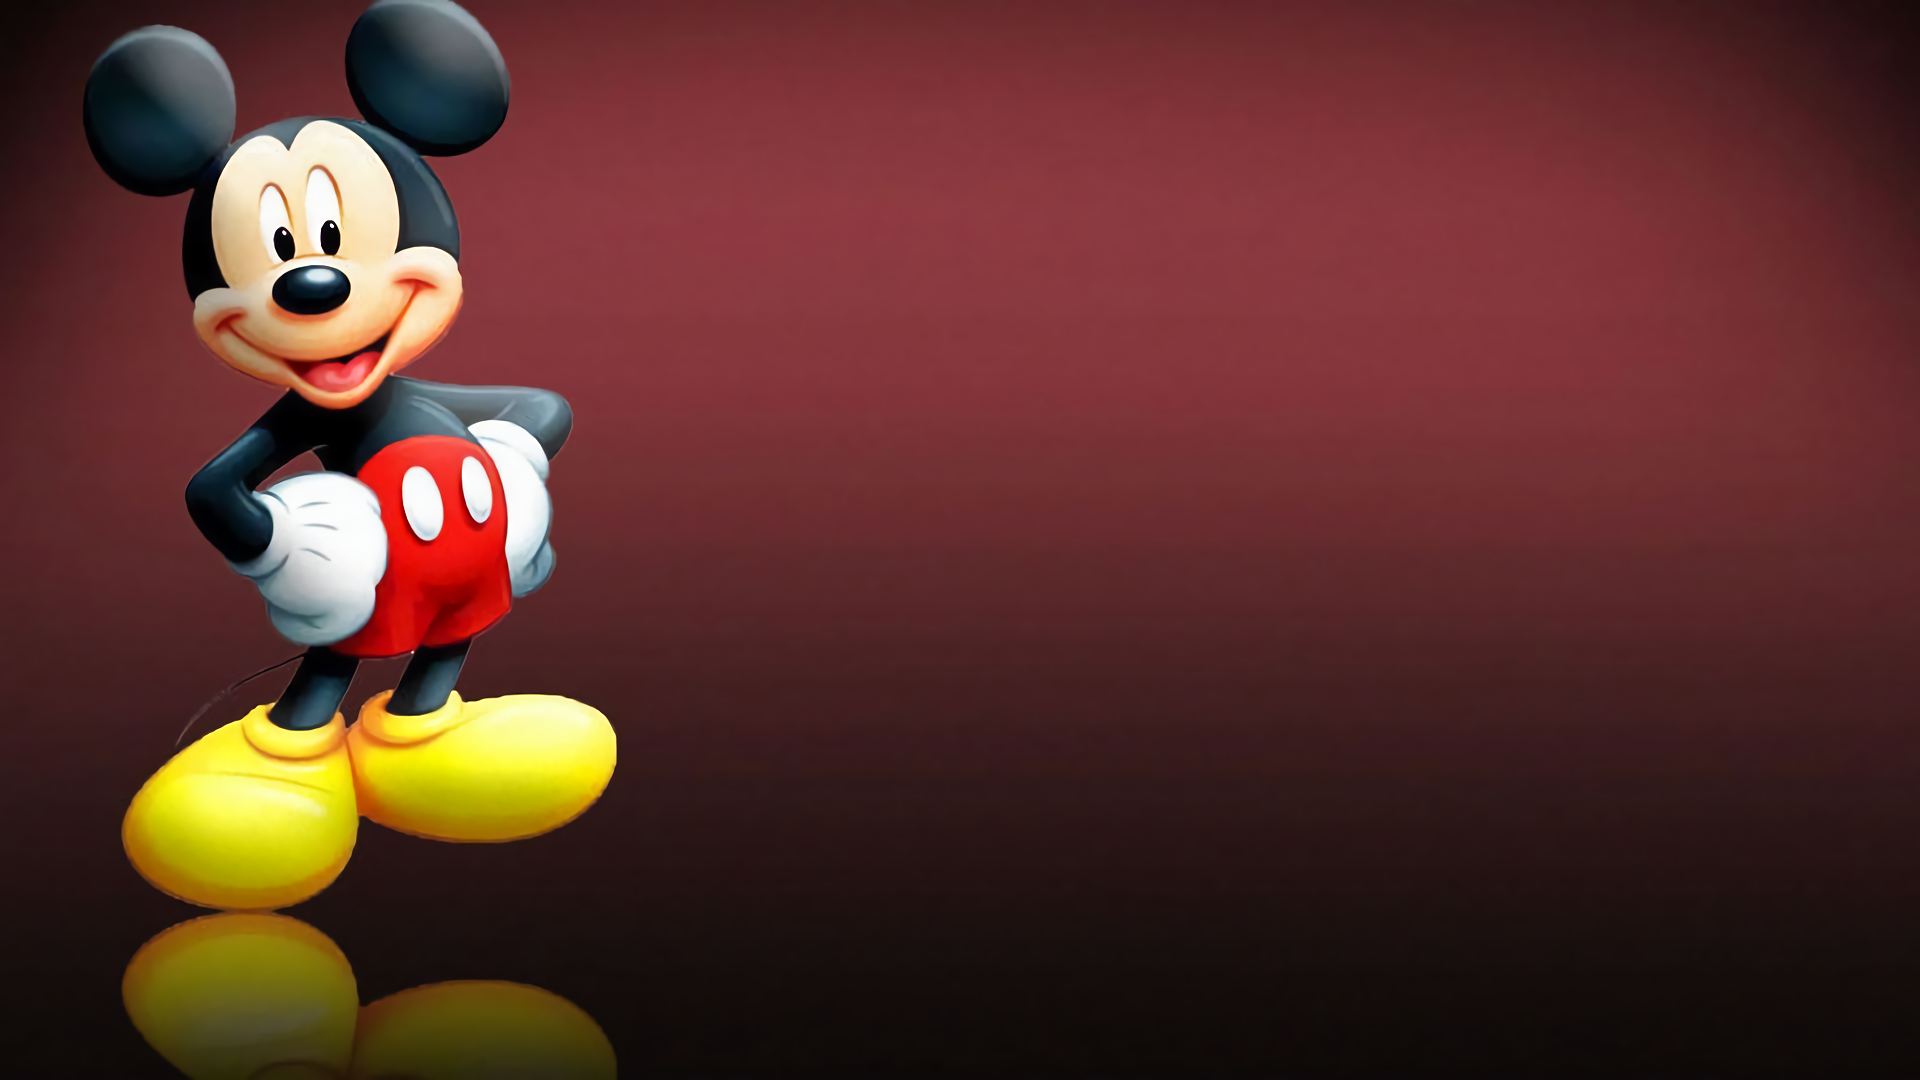 Mickey Mouse Hd Wallpaper Background Image 1920x1080 Id 496002